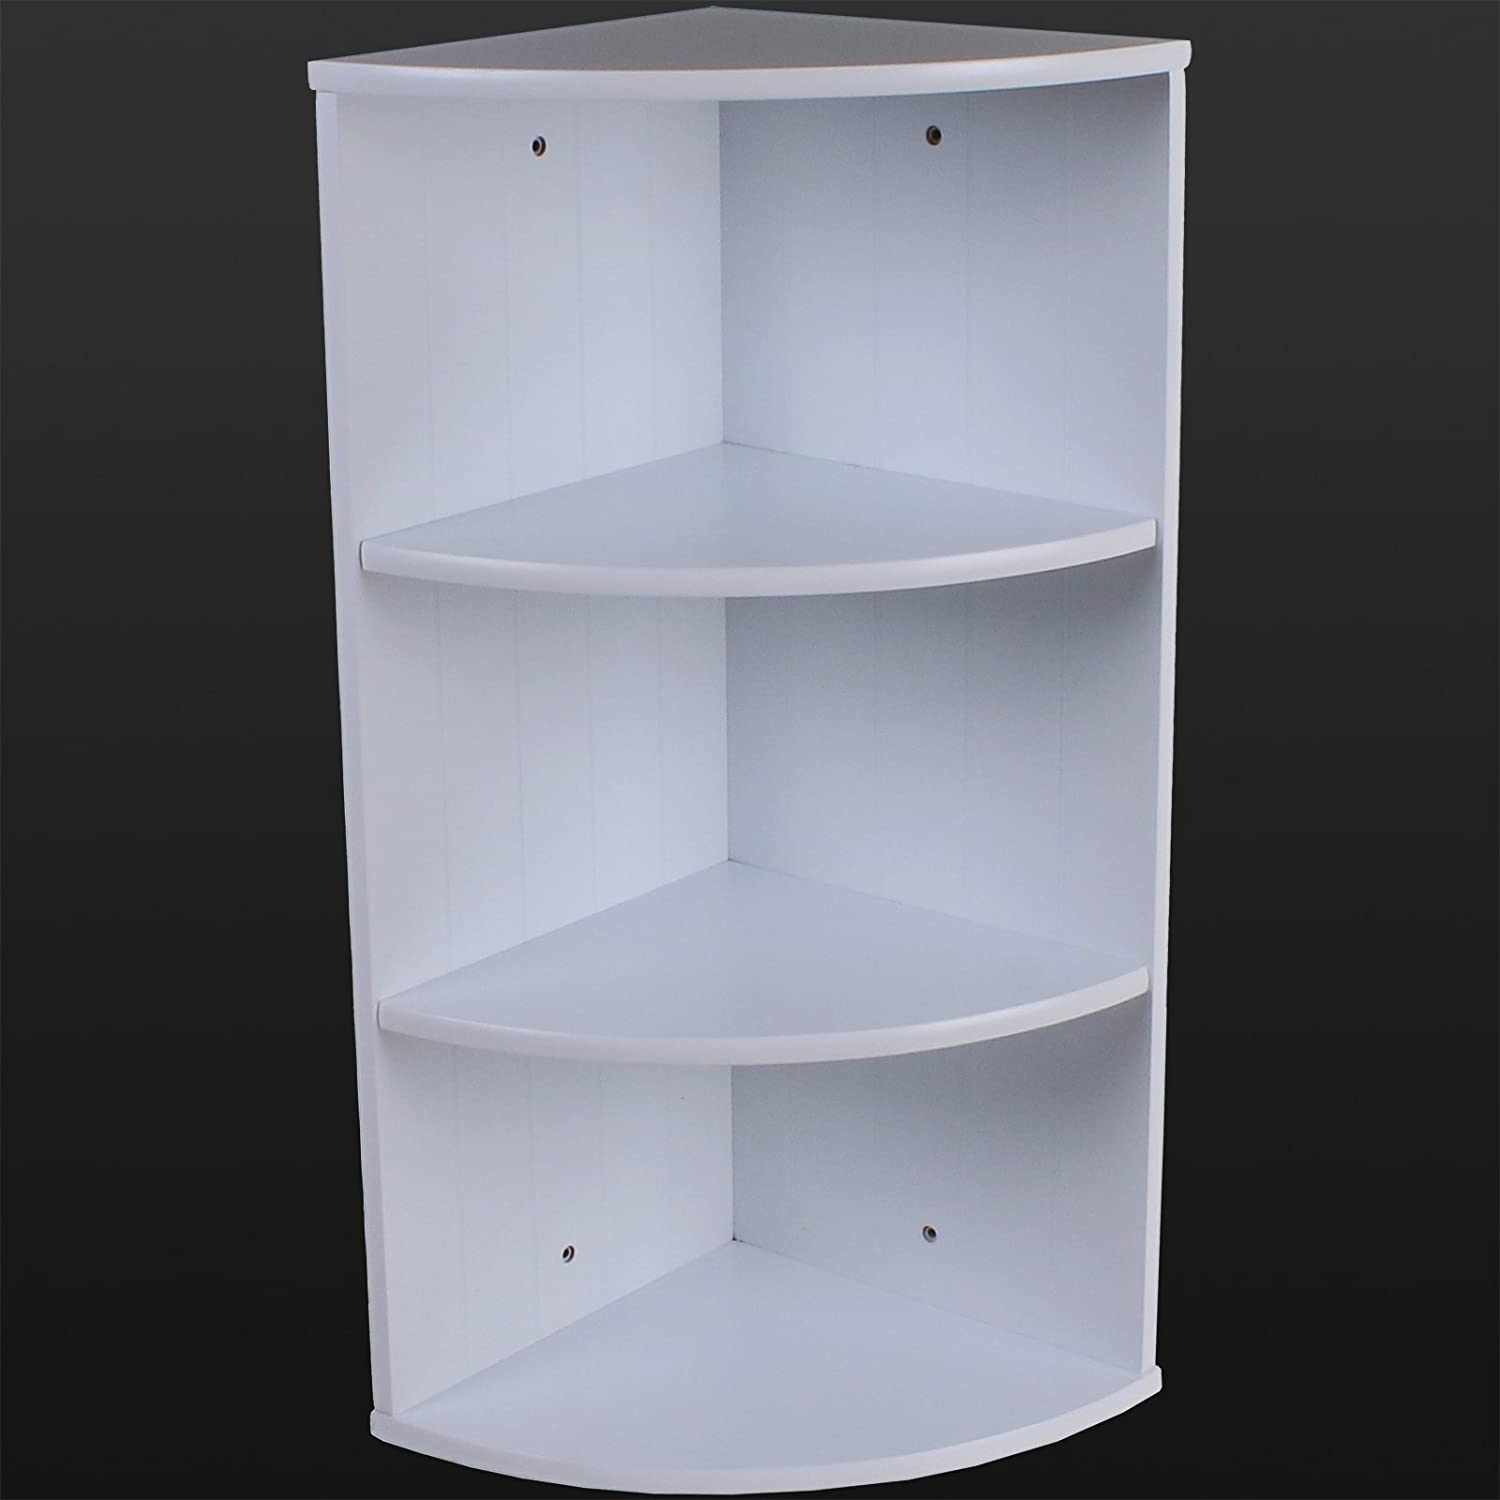 hk a brand new bathroom maine corner shelf unit amazoncouk  - marko bathroom  tier corner shelving unit white wooden shelves storagewall mountable kitchen